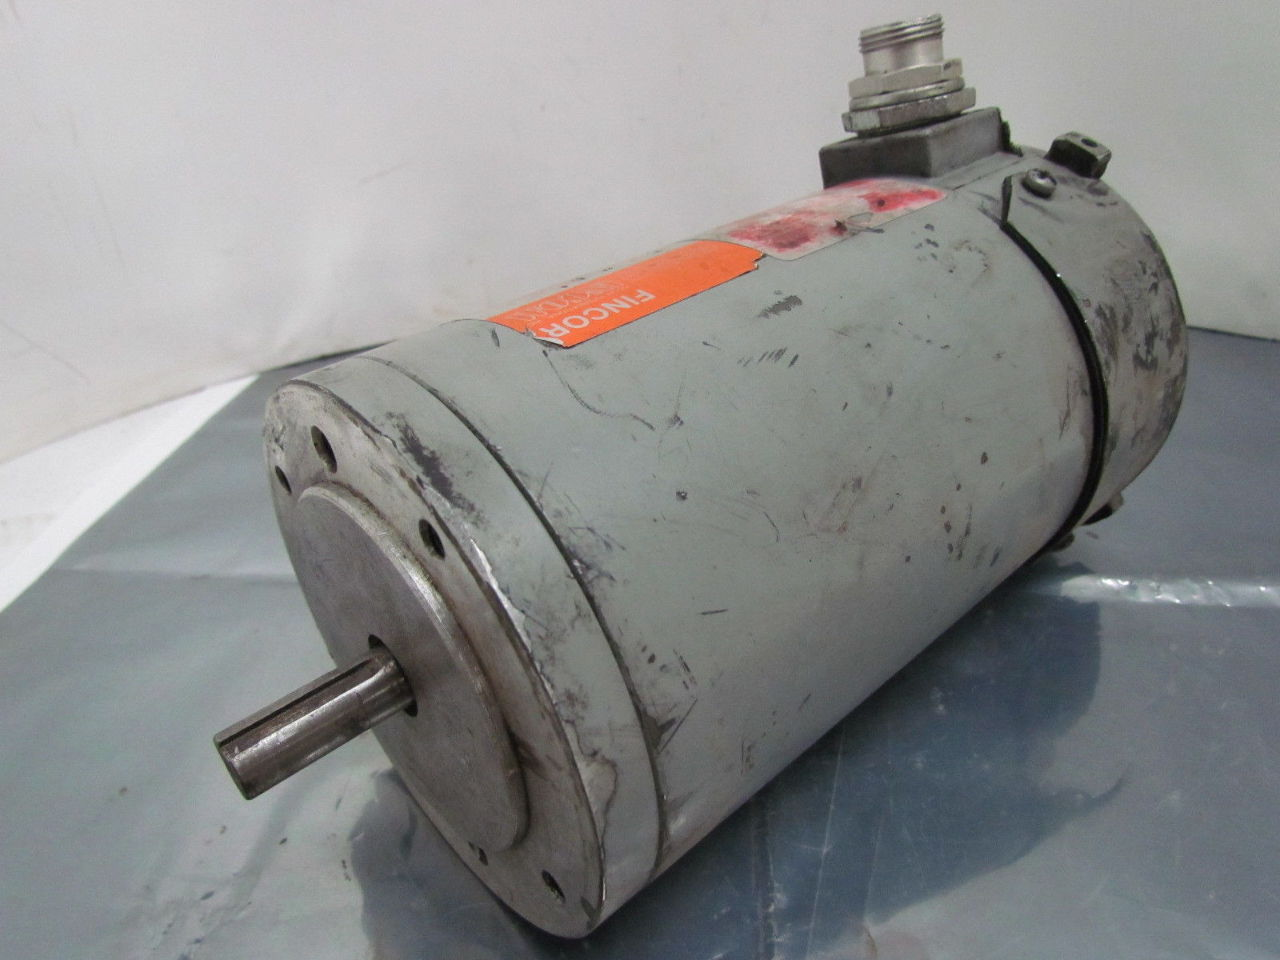 Fincor 9303309tn 5002726 1 3 hp 1725 rpm 90v 48c frame for Dc motor 1 3 hp